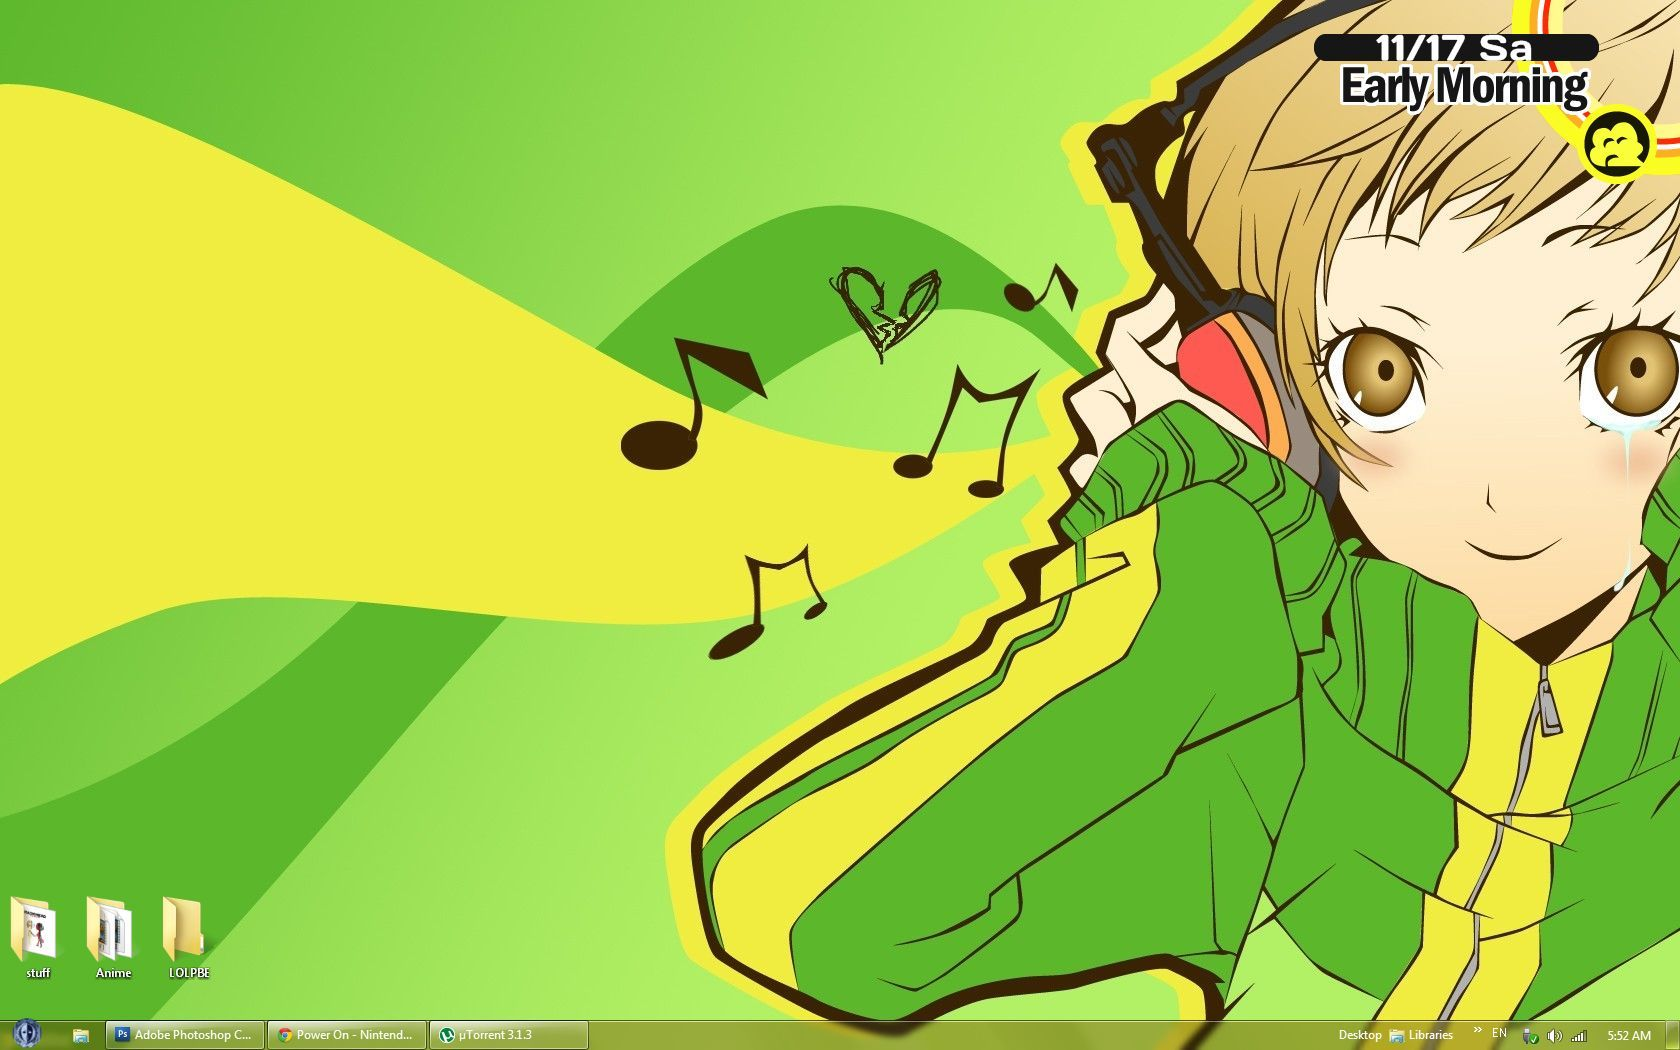 Chie Persona 4 Wallpapers Top Free Chie Persona 4 Backgrounds Wallpaperaccess